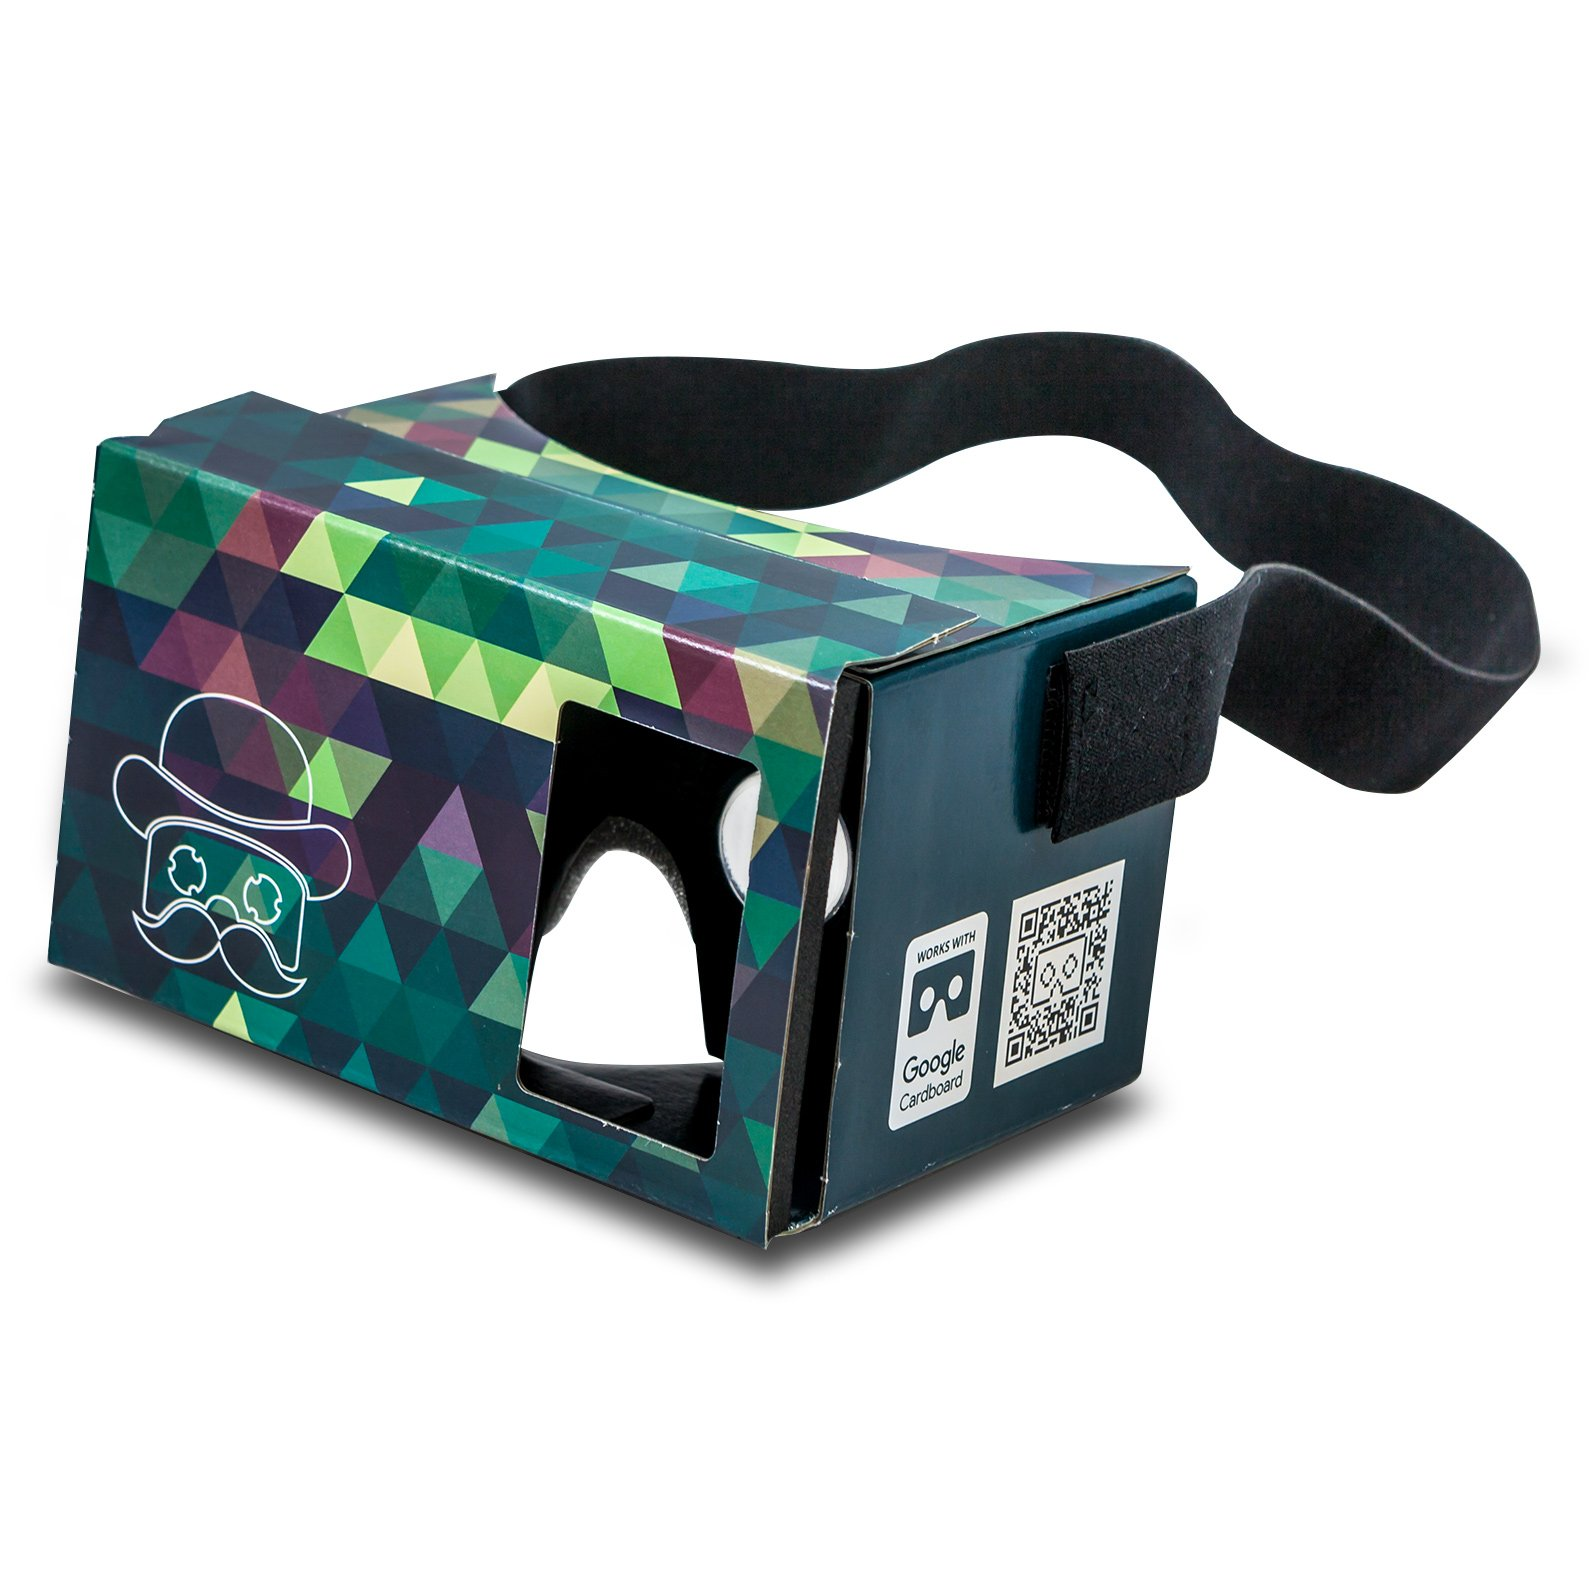 POP! CARDBOARD 3.0 + FREE Head Strap. Made in Germany Inspired By Google Cardboard 2.0. 3d Glasses Virtual Reality Viewer for Any Smartphone / Mobile (Android Samsung S5 S6 Apple Ios Iphone 6 Plus). On Set Including Lenses. No Kit, No Assembly: Fold It up